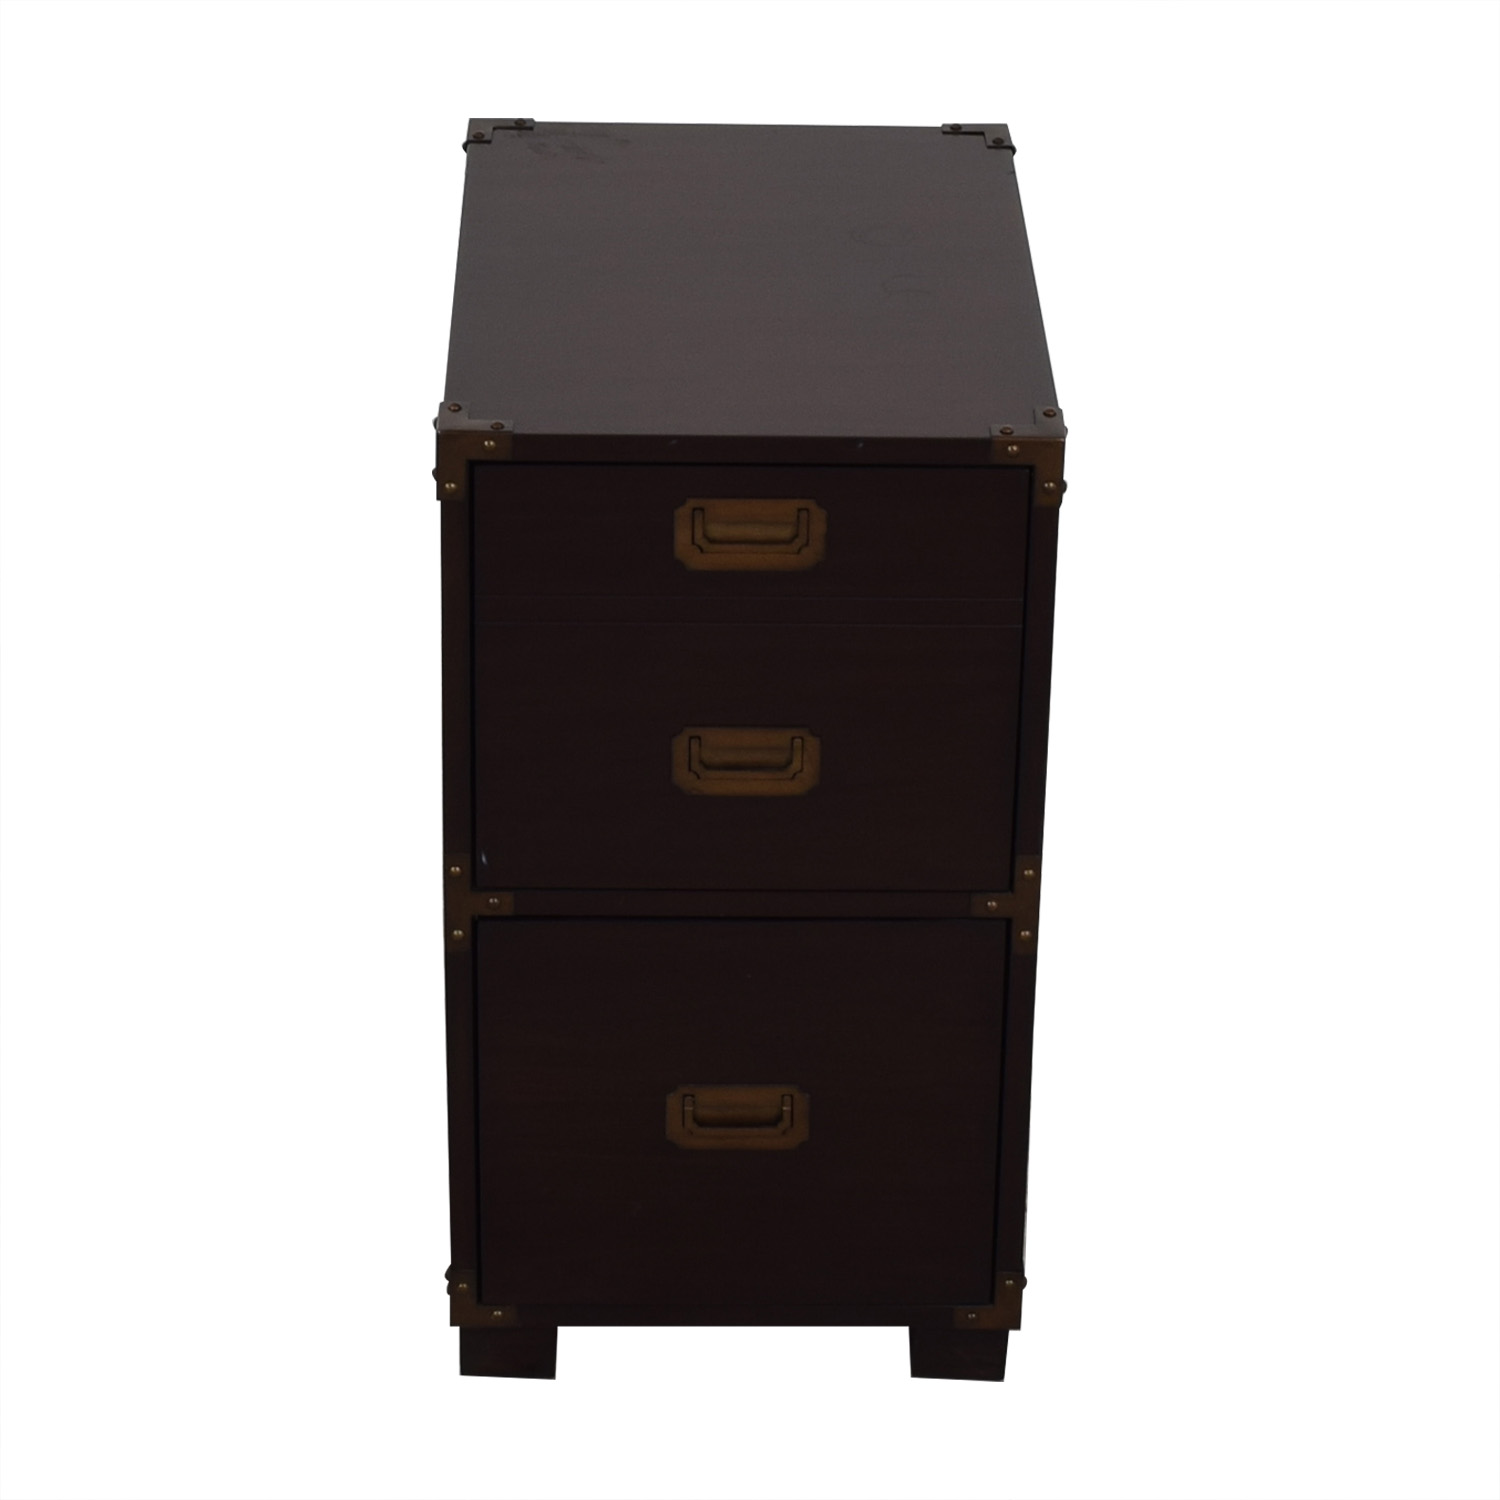 File Cabinet with Metal Accents dimensions